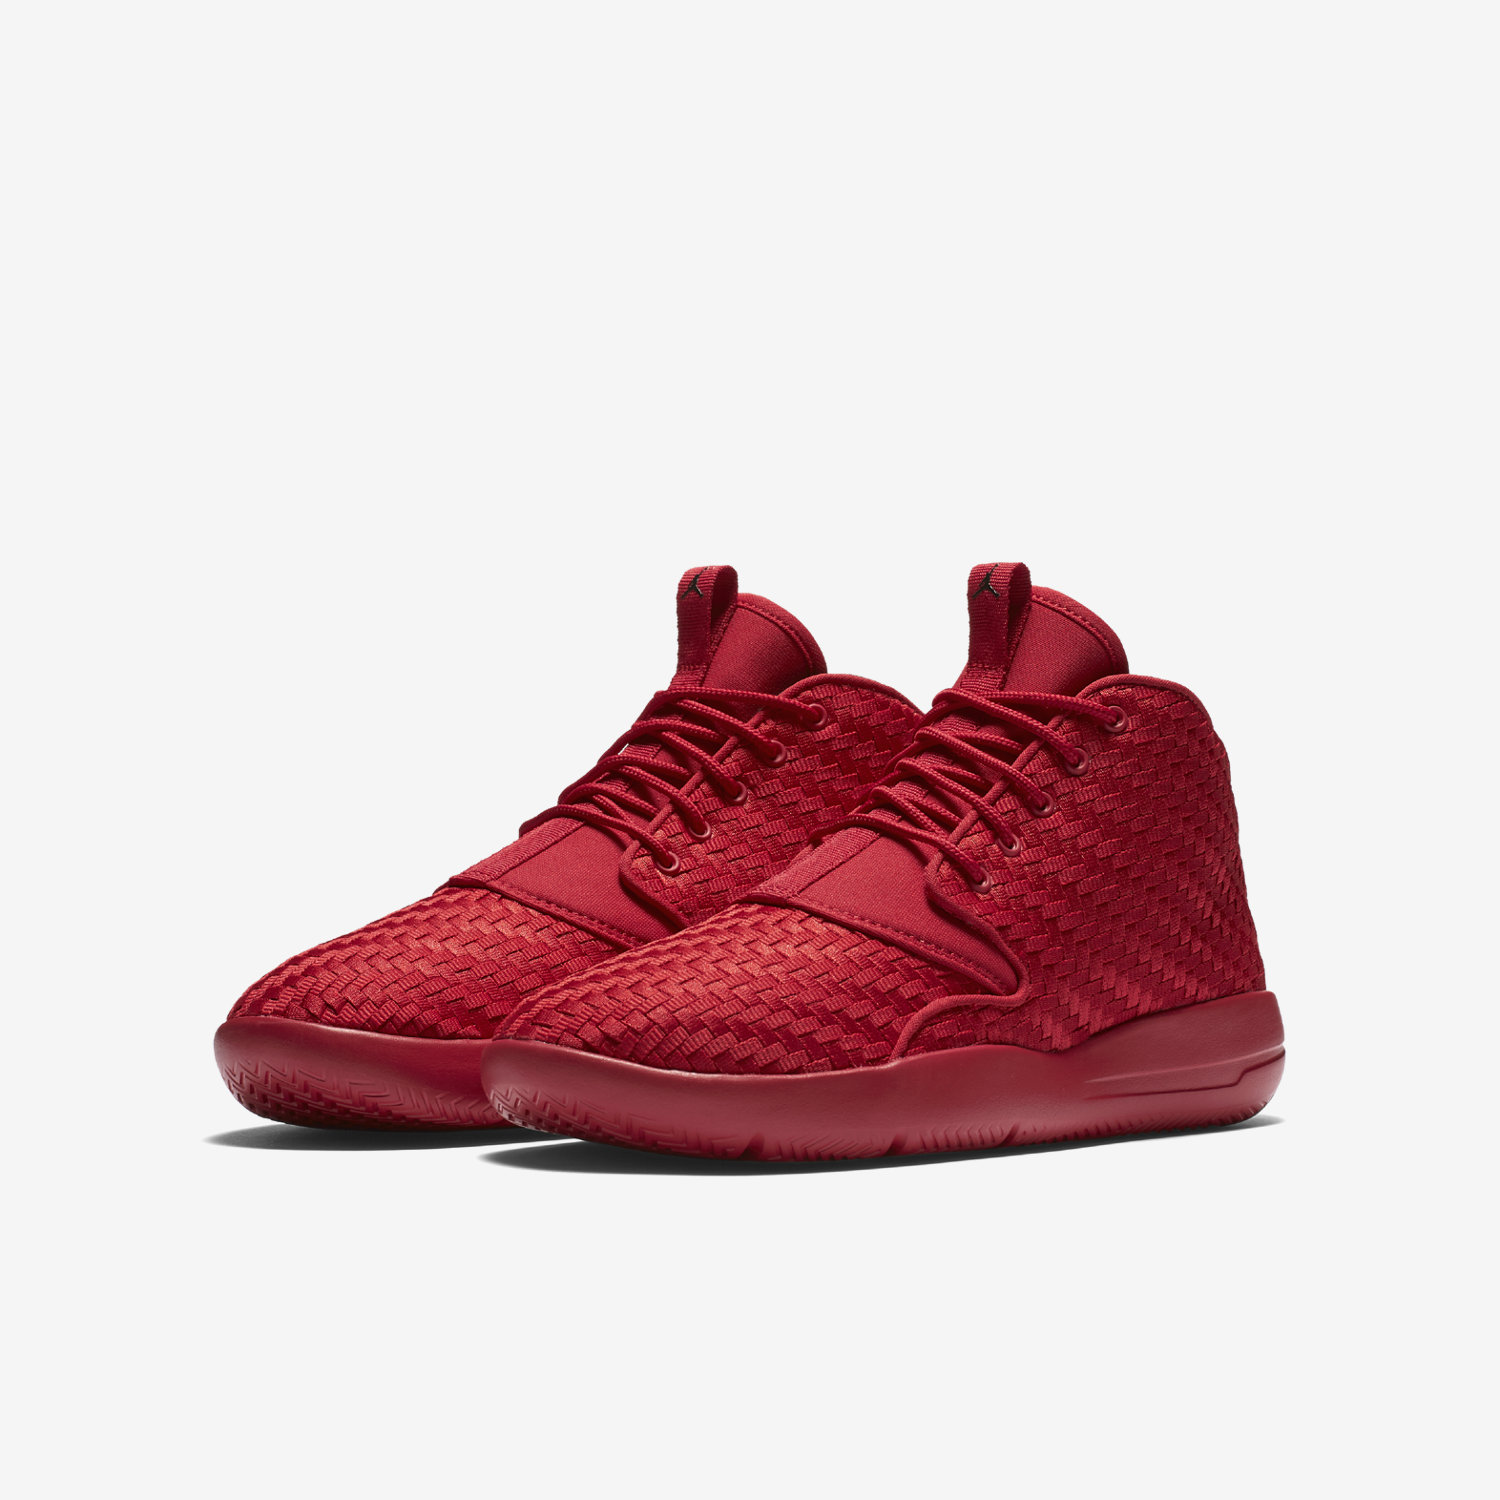 5cb1cf32abdf nike jordan eclipse red